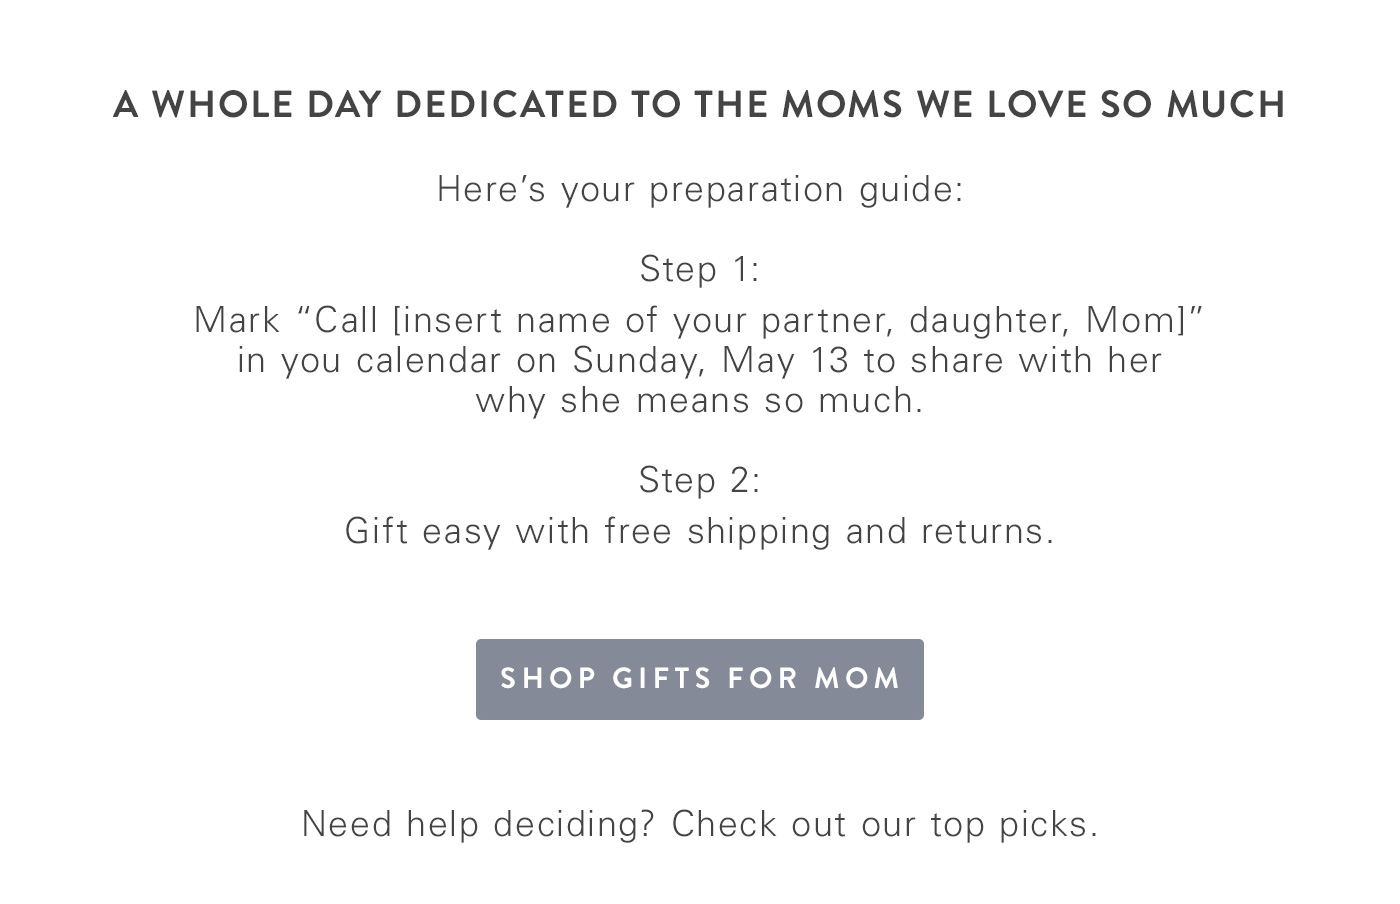 Mothers Day preparation guide.